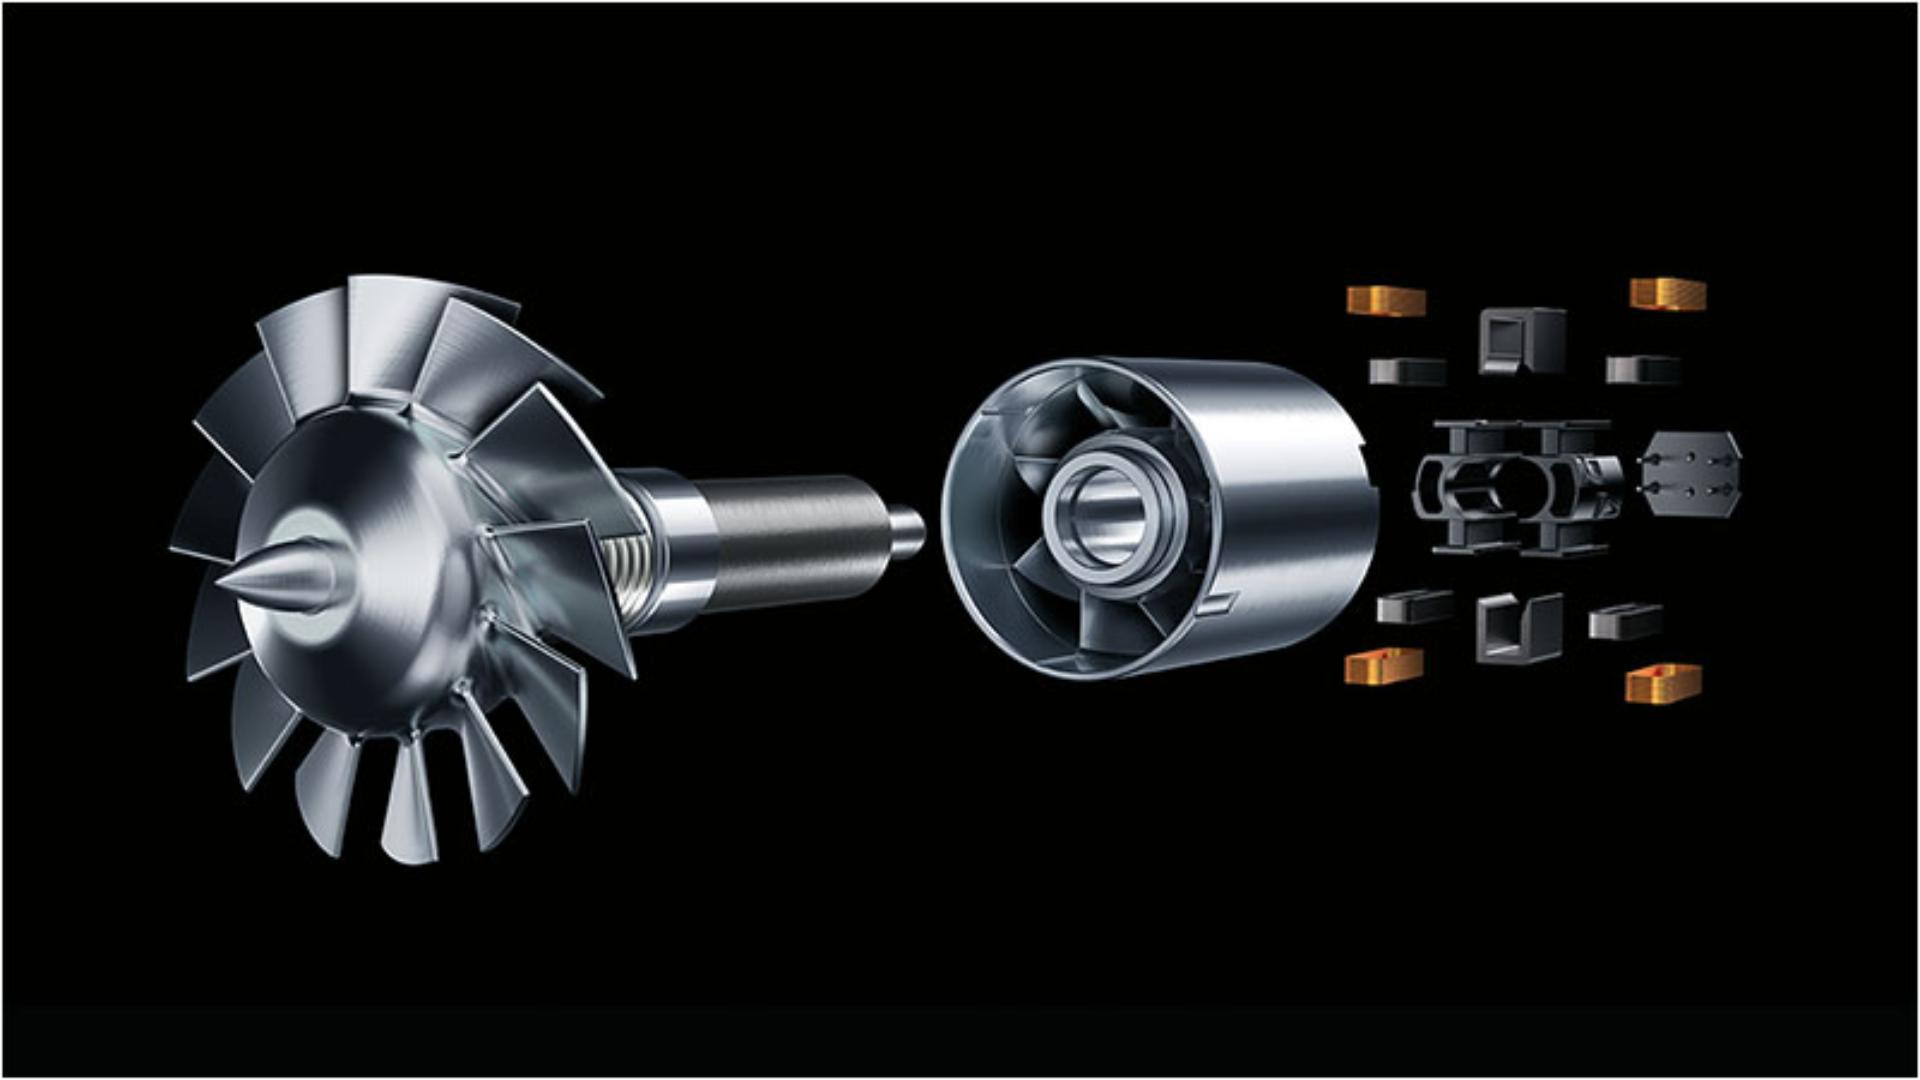 Close-up image of Dyson digital motor V9